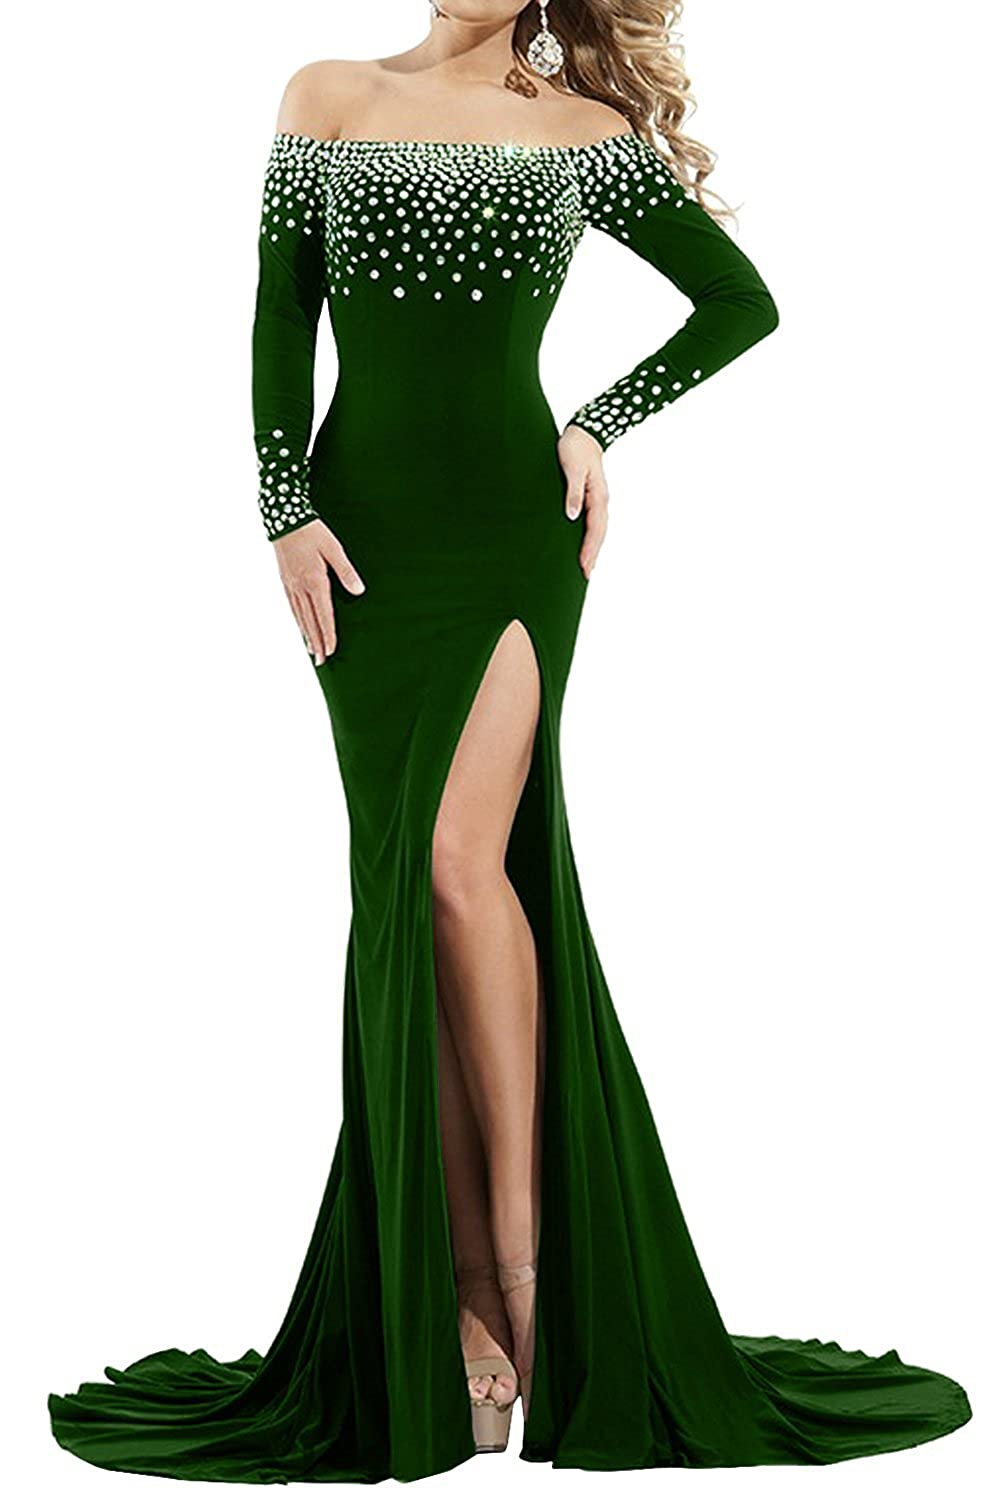 Emerald Green Sweet Bridal Women's Long Sleeve Off Shoulder Split Rhinestone Evening Dress